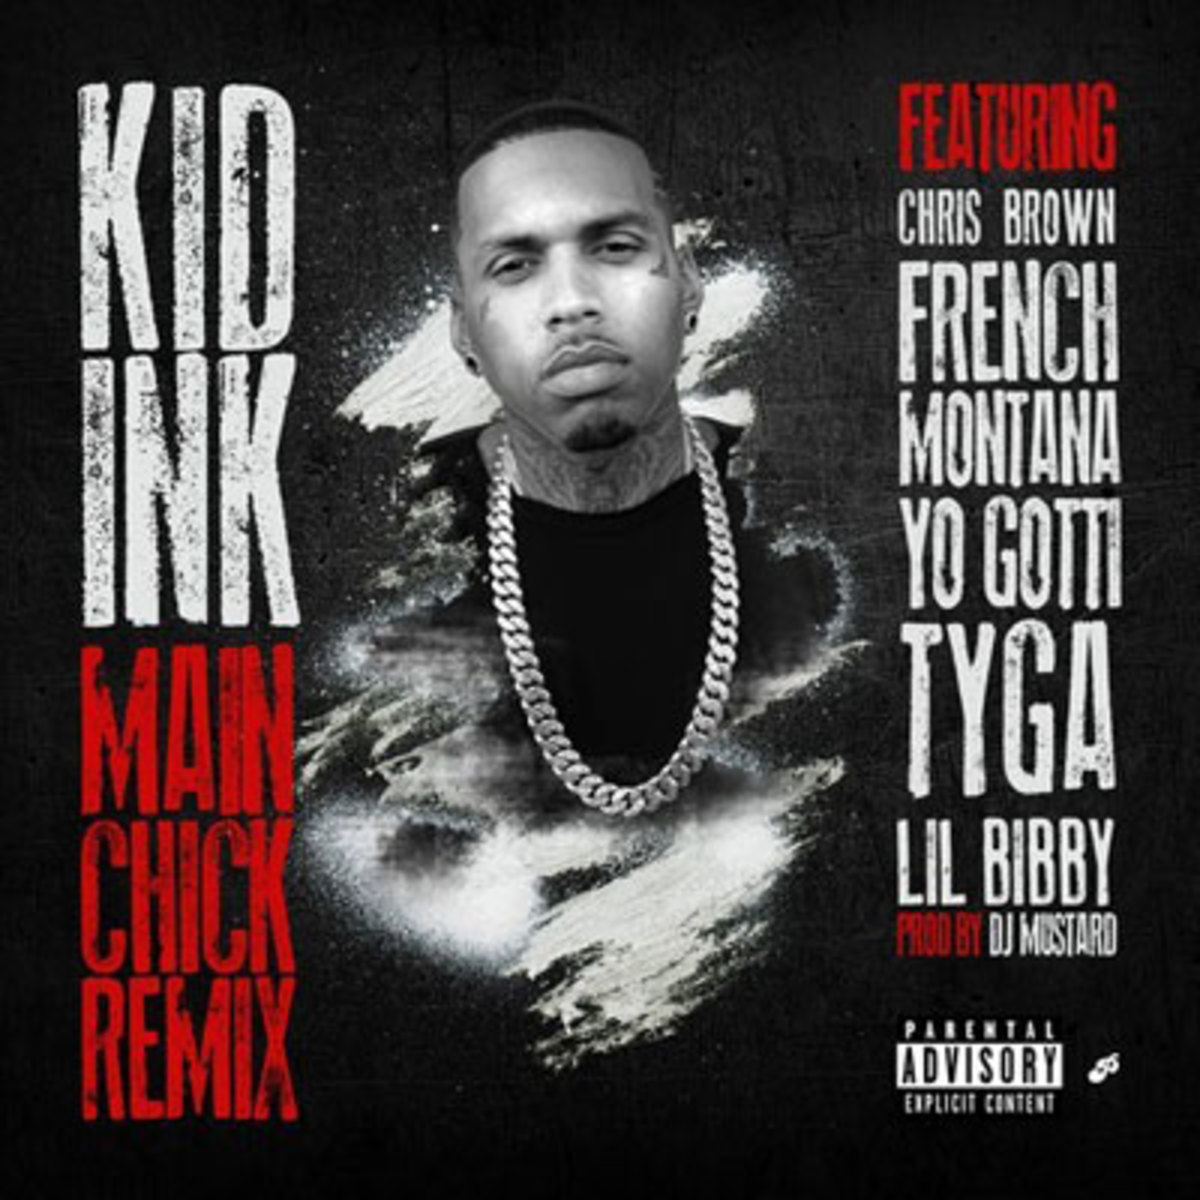 kidink-mainchickrmx2.jpg